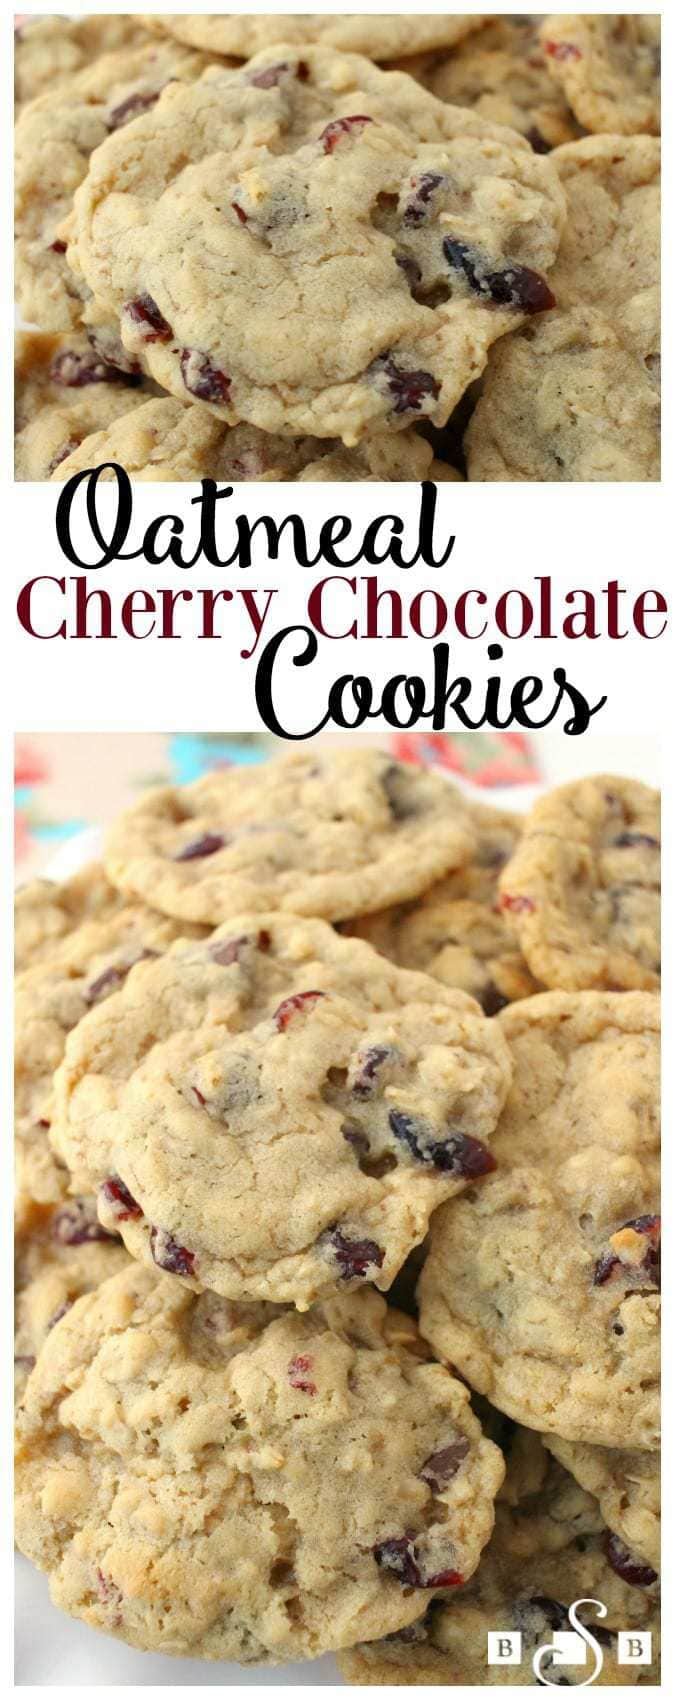 Oatmeal Cherry Chocolate Cookies - Butter With A Side of Bread